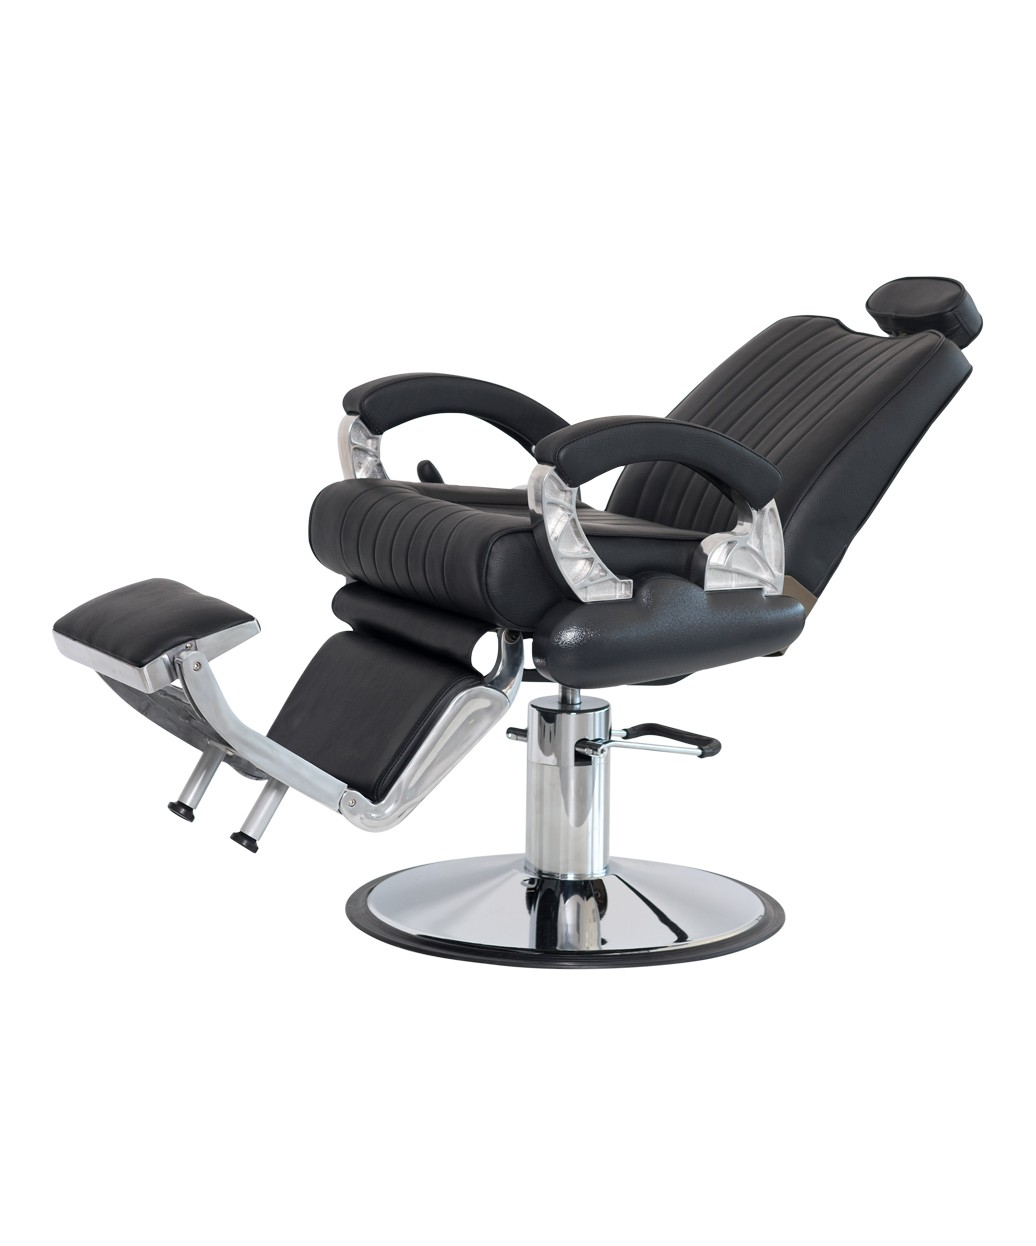 professional barber chair reviews pillow for bed target apollo